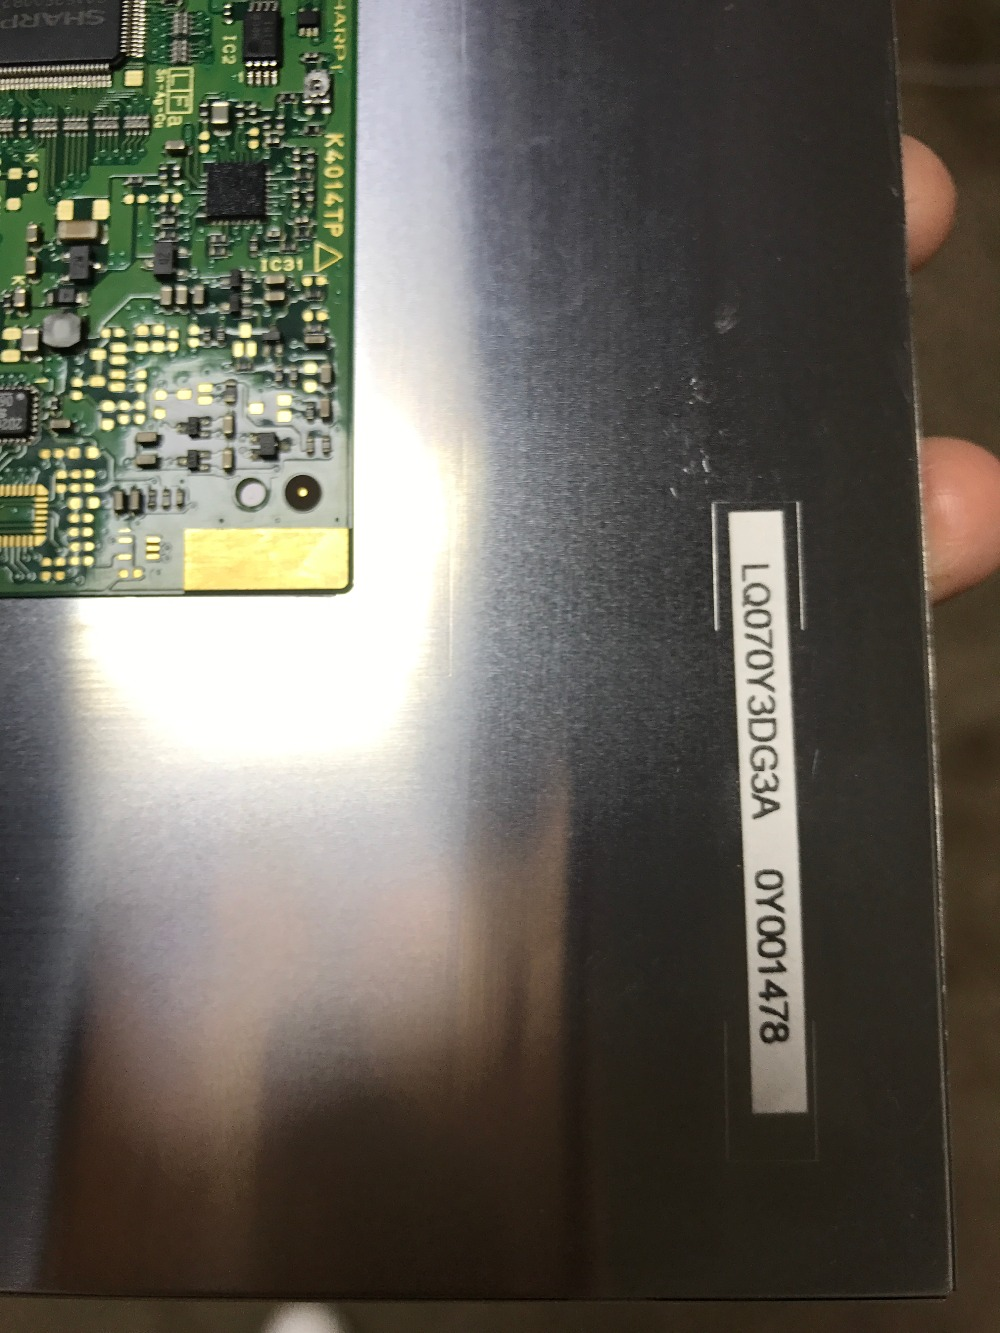 LQ070Y3DG3A 7.0 Inch Industrial lcd, new&A+ grade in stock, free shipmentLQ070Y3DG3A 7.0 Inch Industrial lcd, new&A+ grade in stock, free shipment